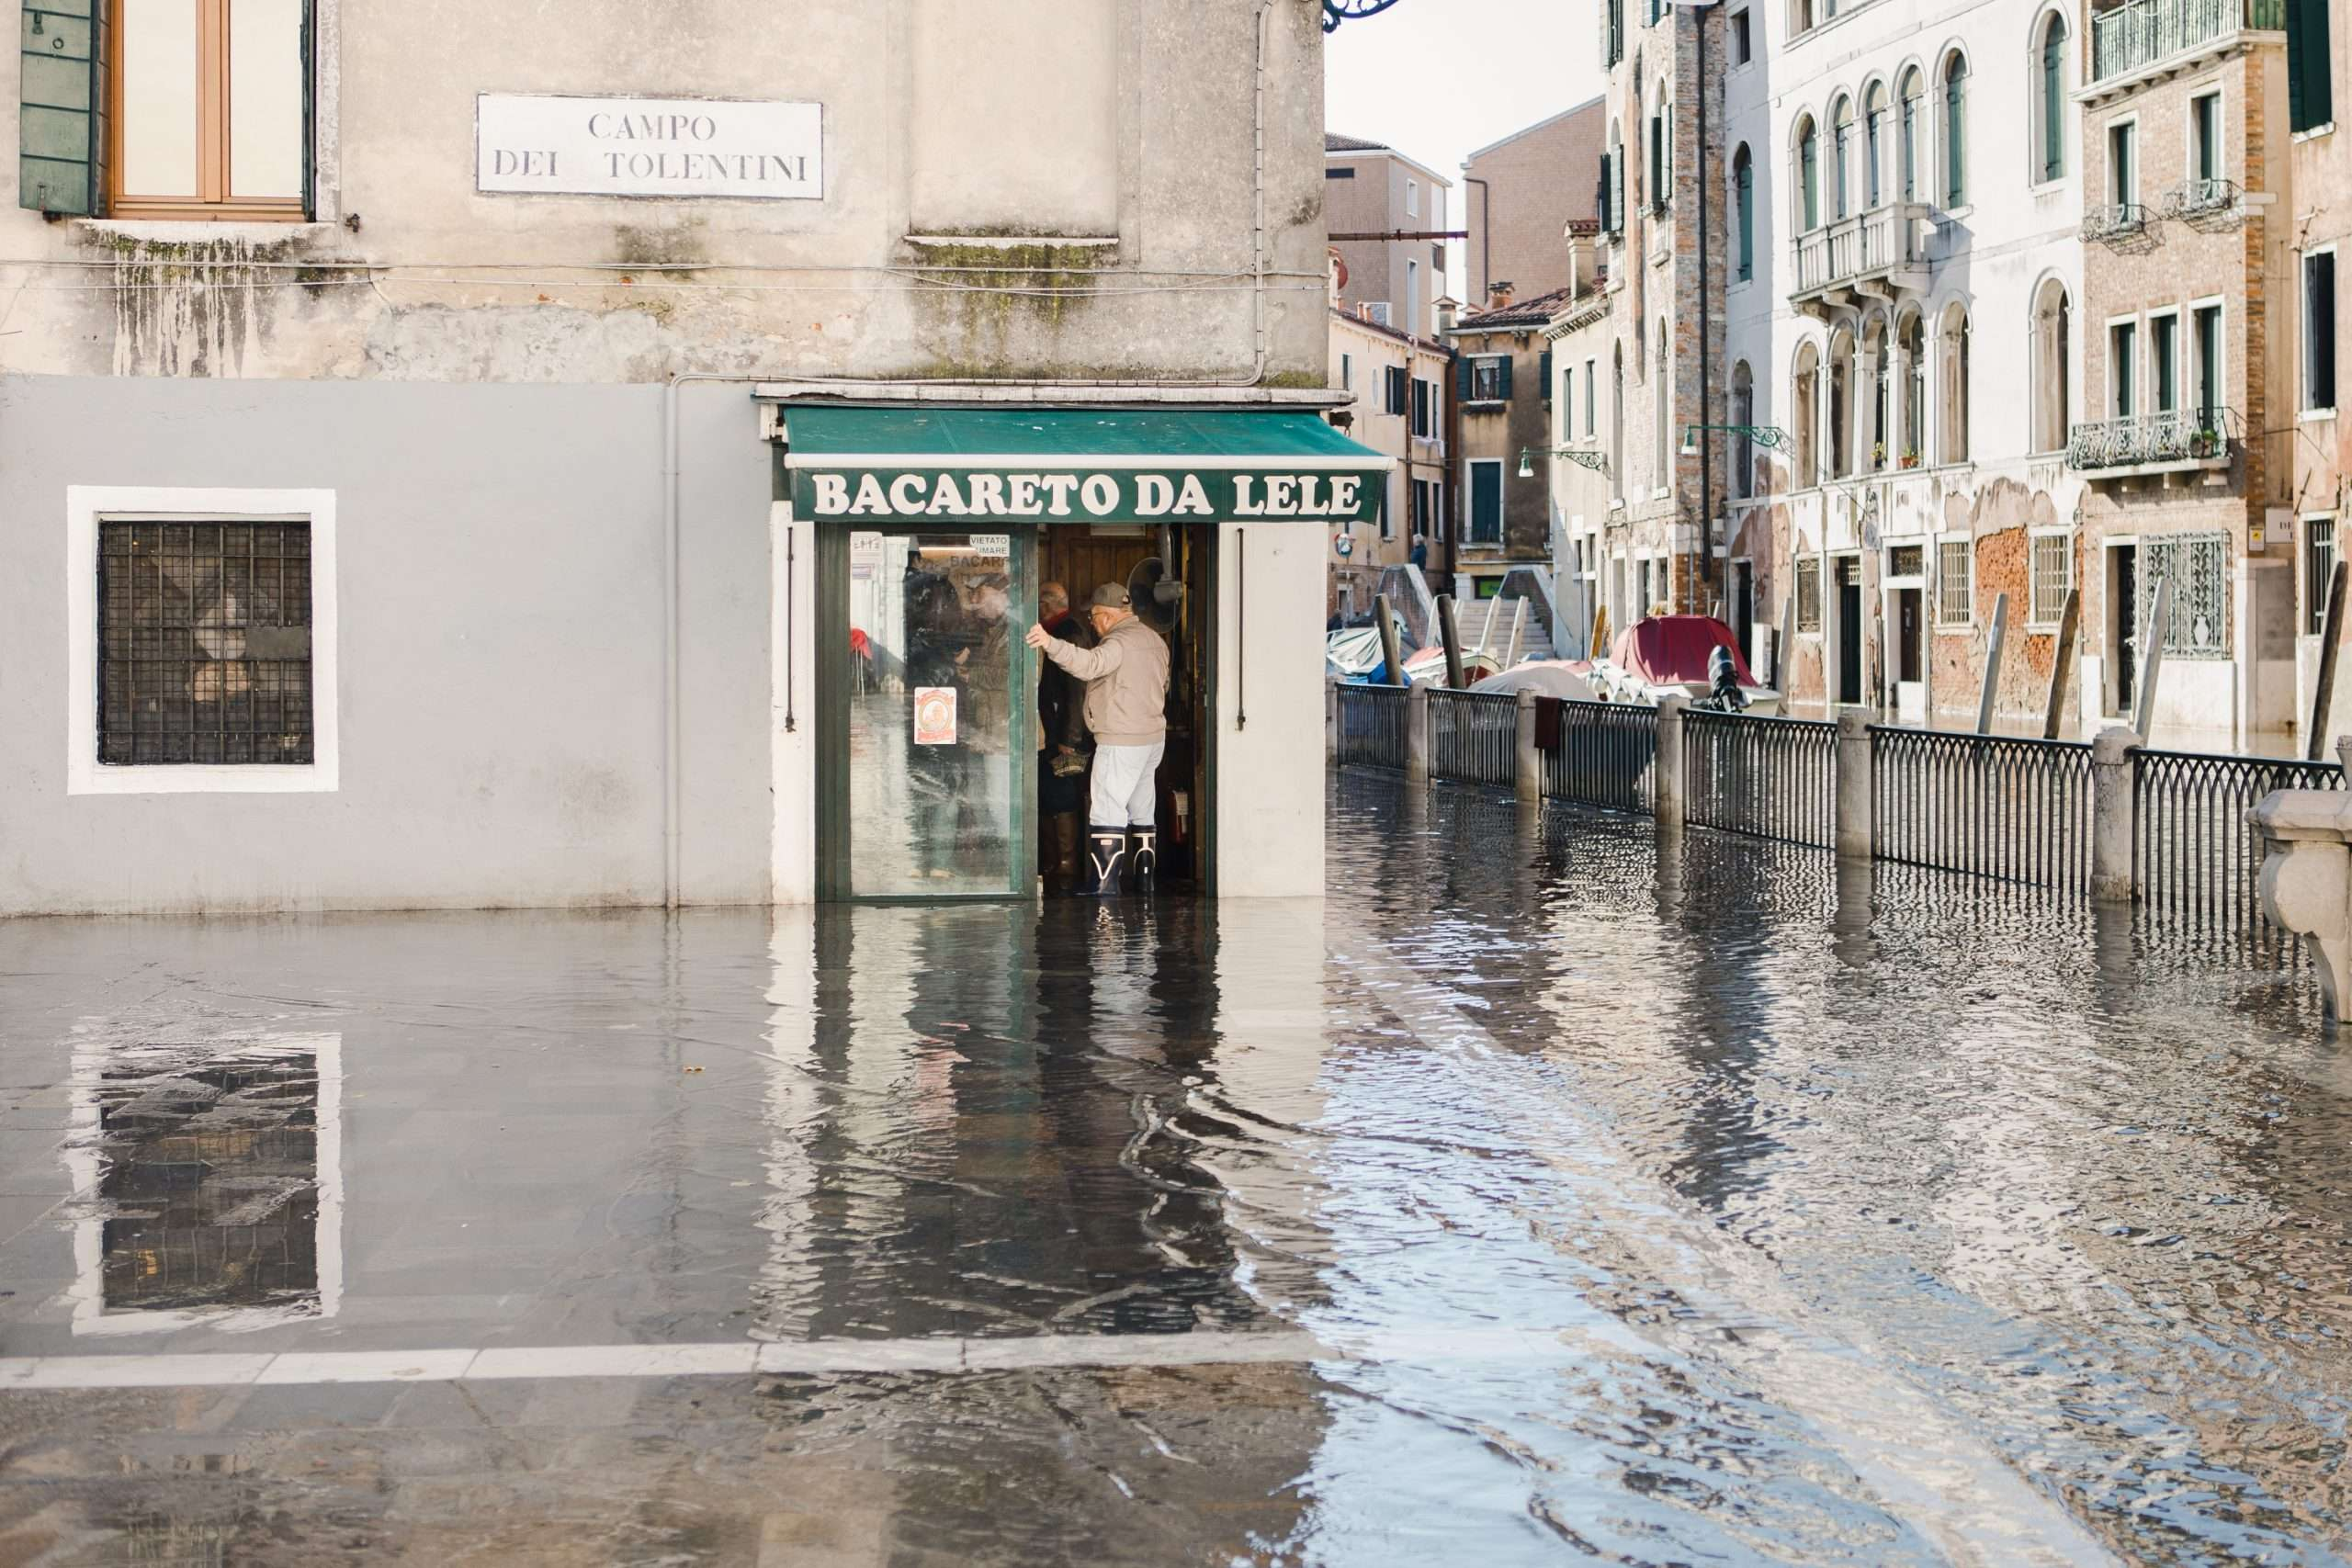 Venice Neighborhoods Santa Croce Bacareto da Lele with Acqua Alta Flood